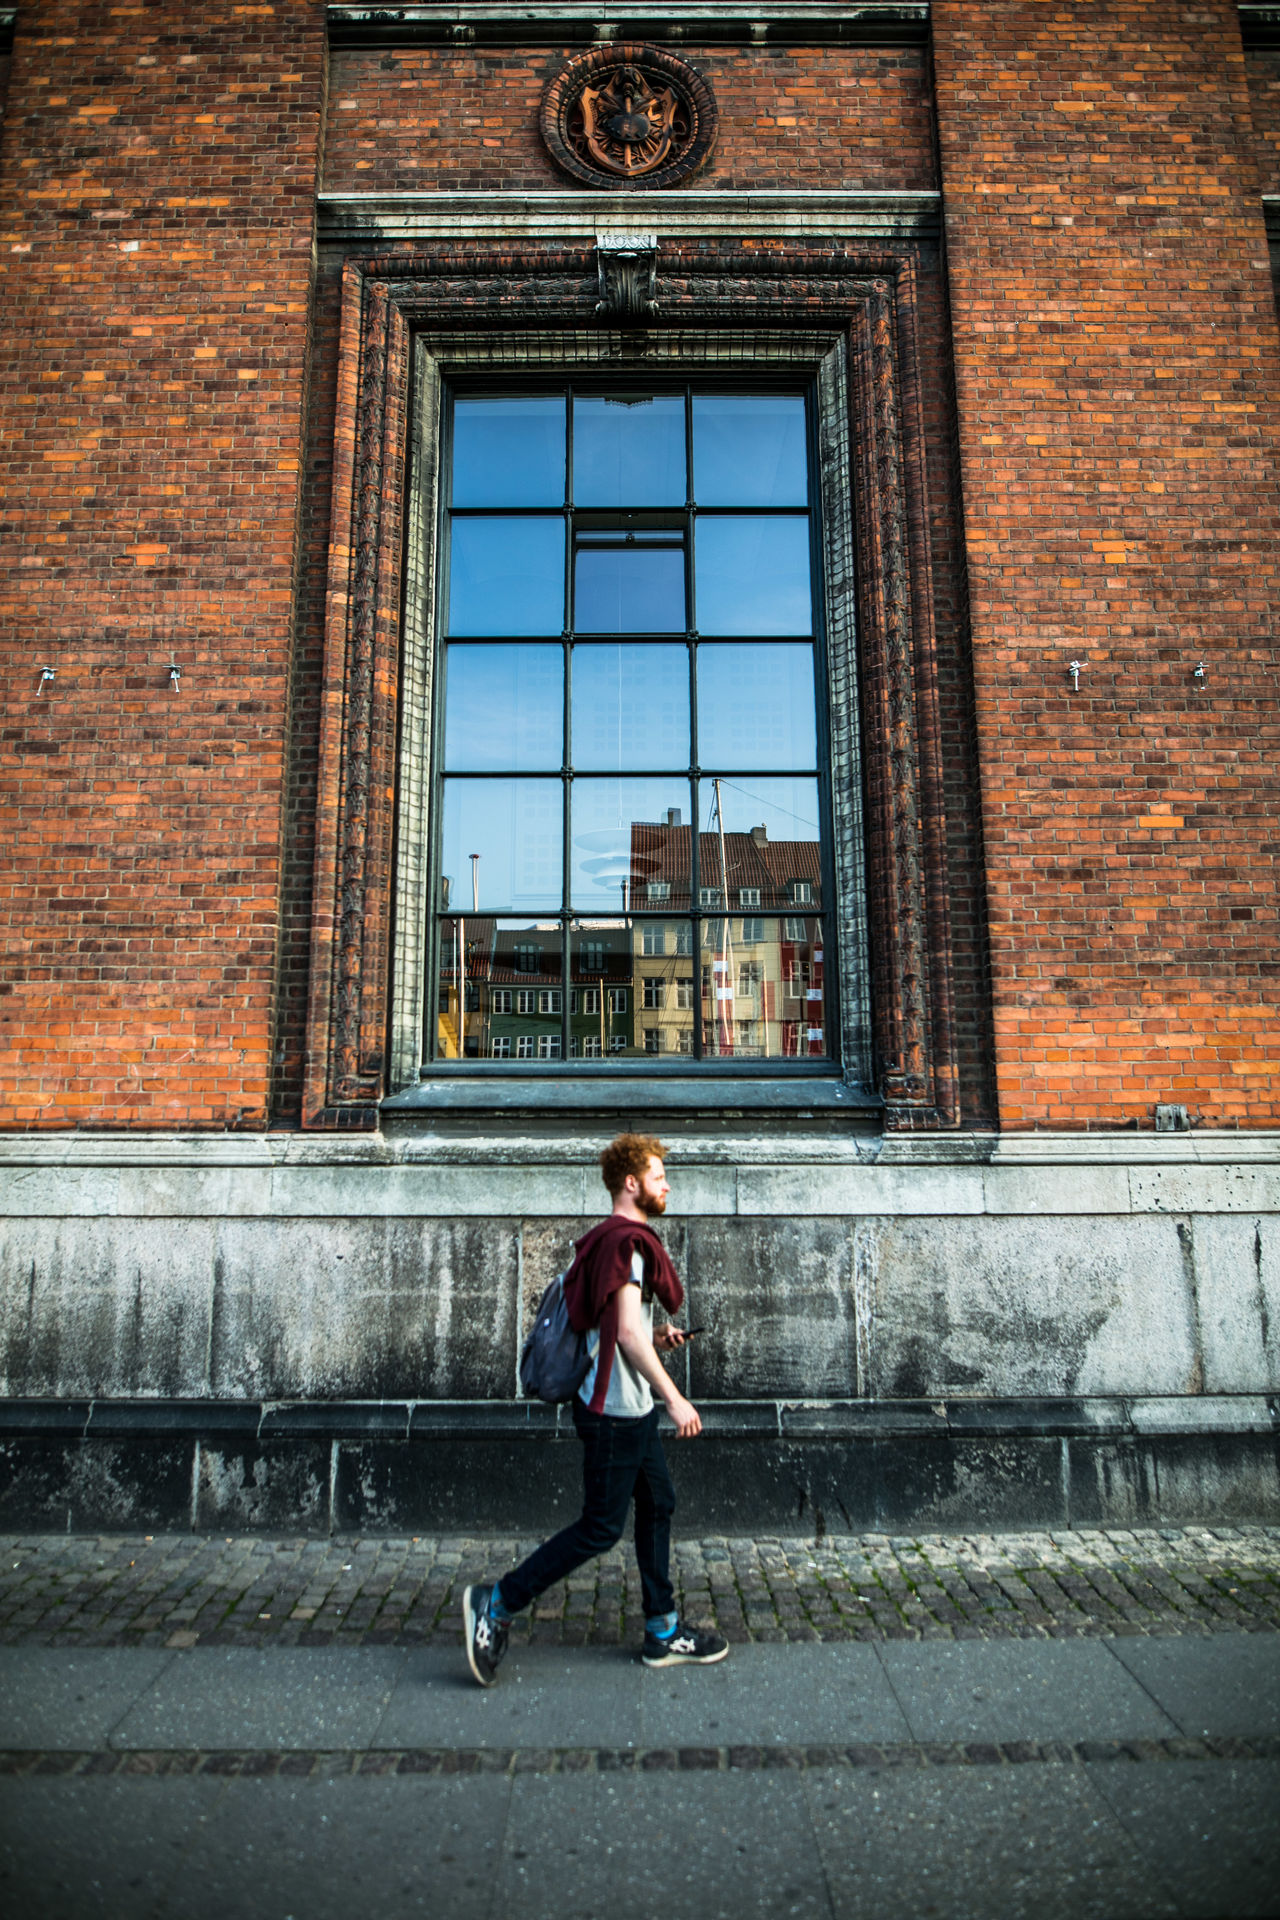 Architecture Brick Wall Building Exterior Built Structure Canon Childhood City Day Discover Your City EyeEm Gallery Full Length One Person Outdoors People Real People Spring The Week Of Eyeem Tourism Travel Travel Destinations Wanderlust The Street Photographer - 2017 EyeEm Awards